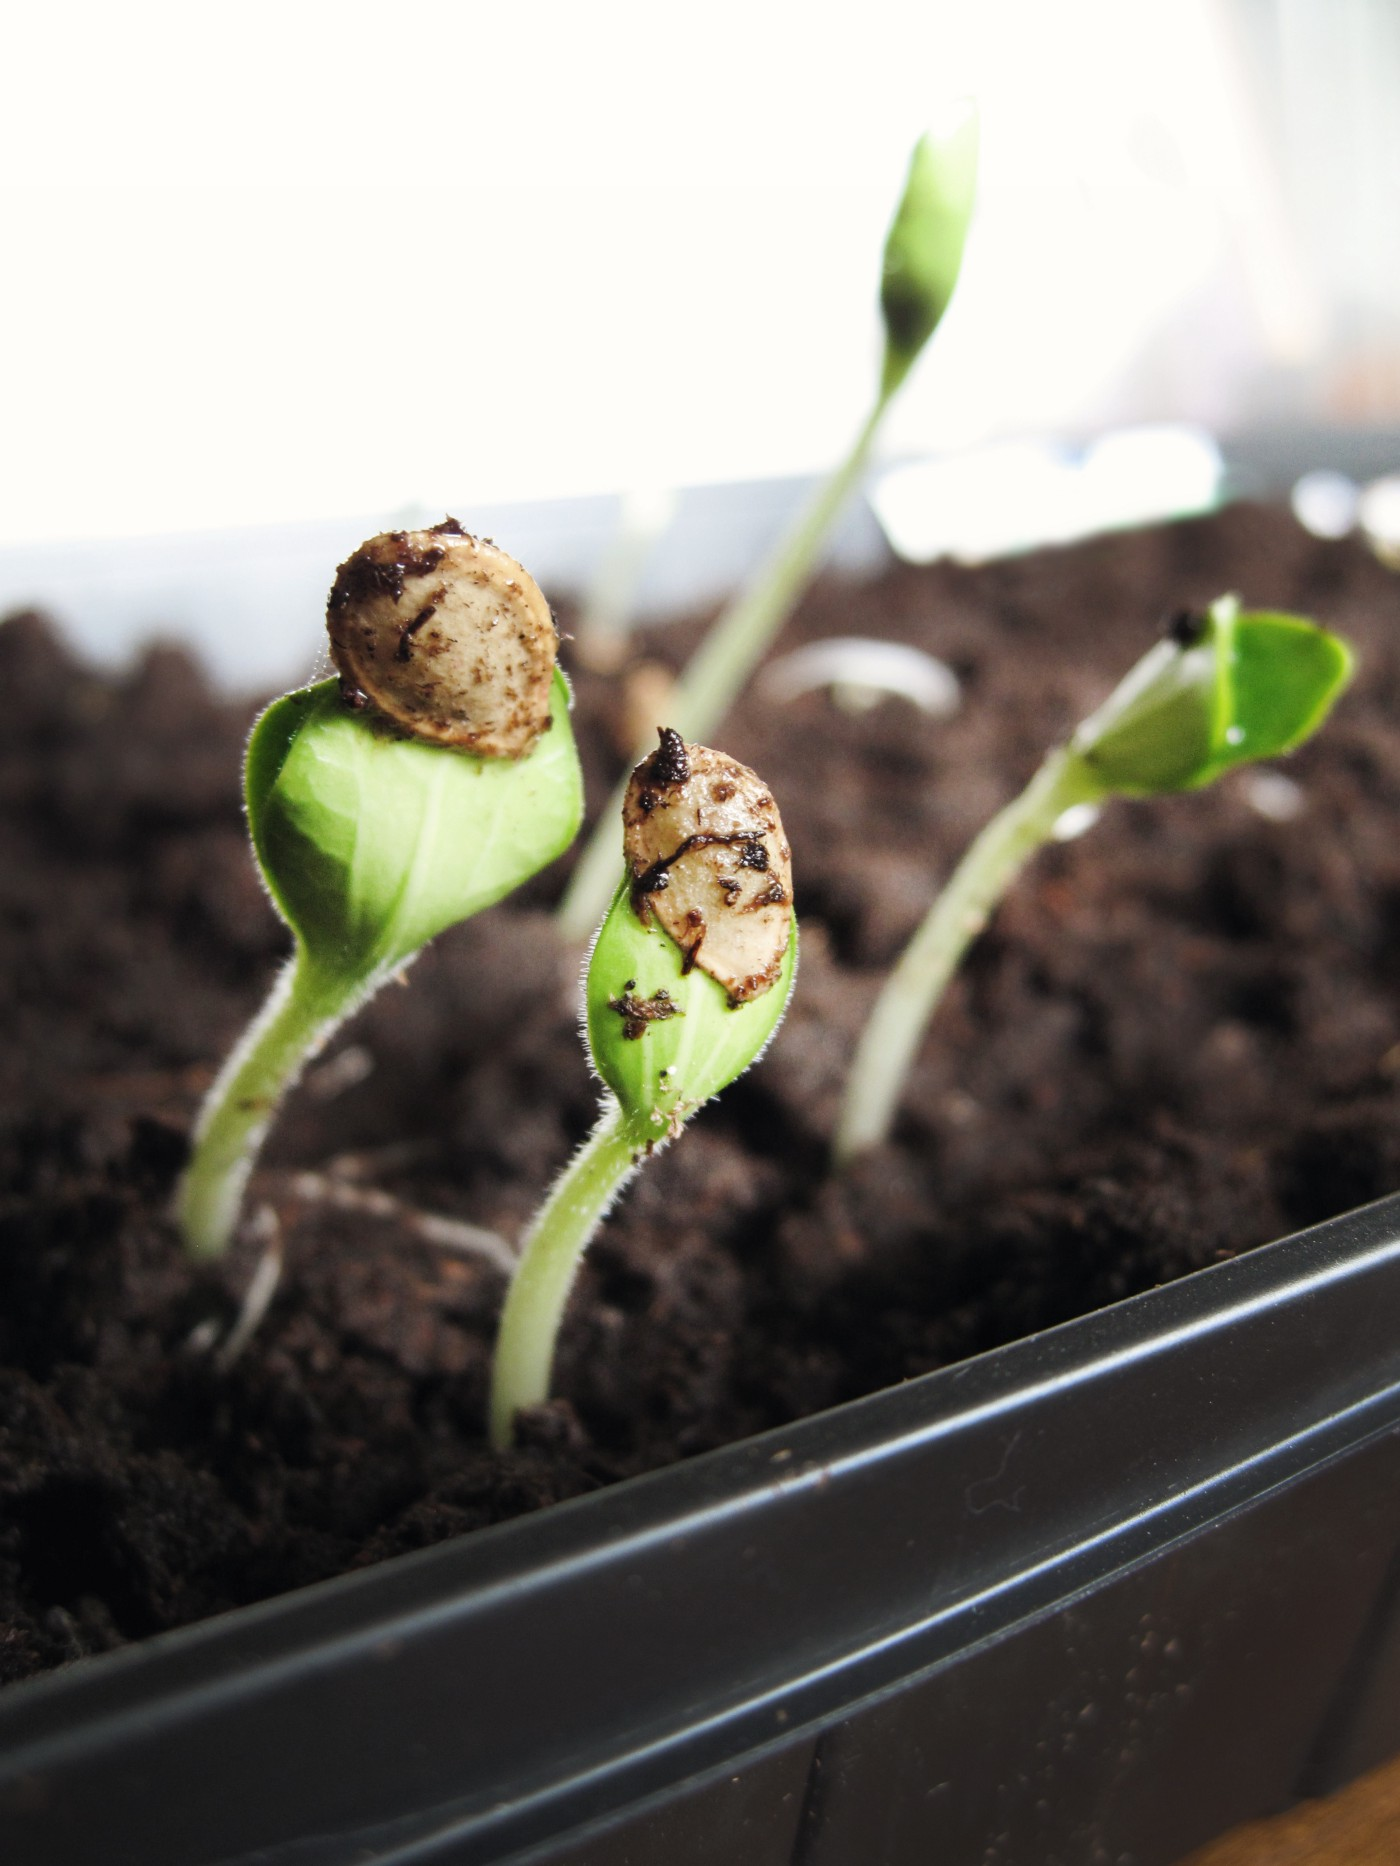 Bean sprouts starting grow from dirt.